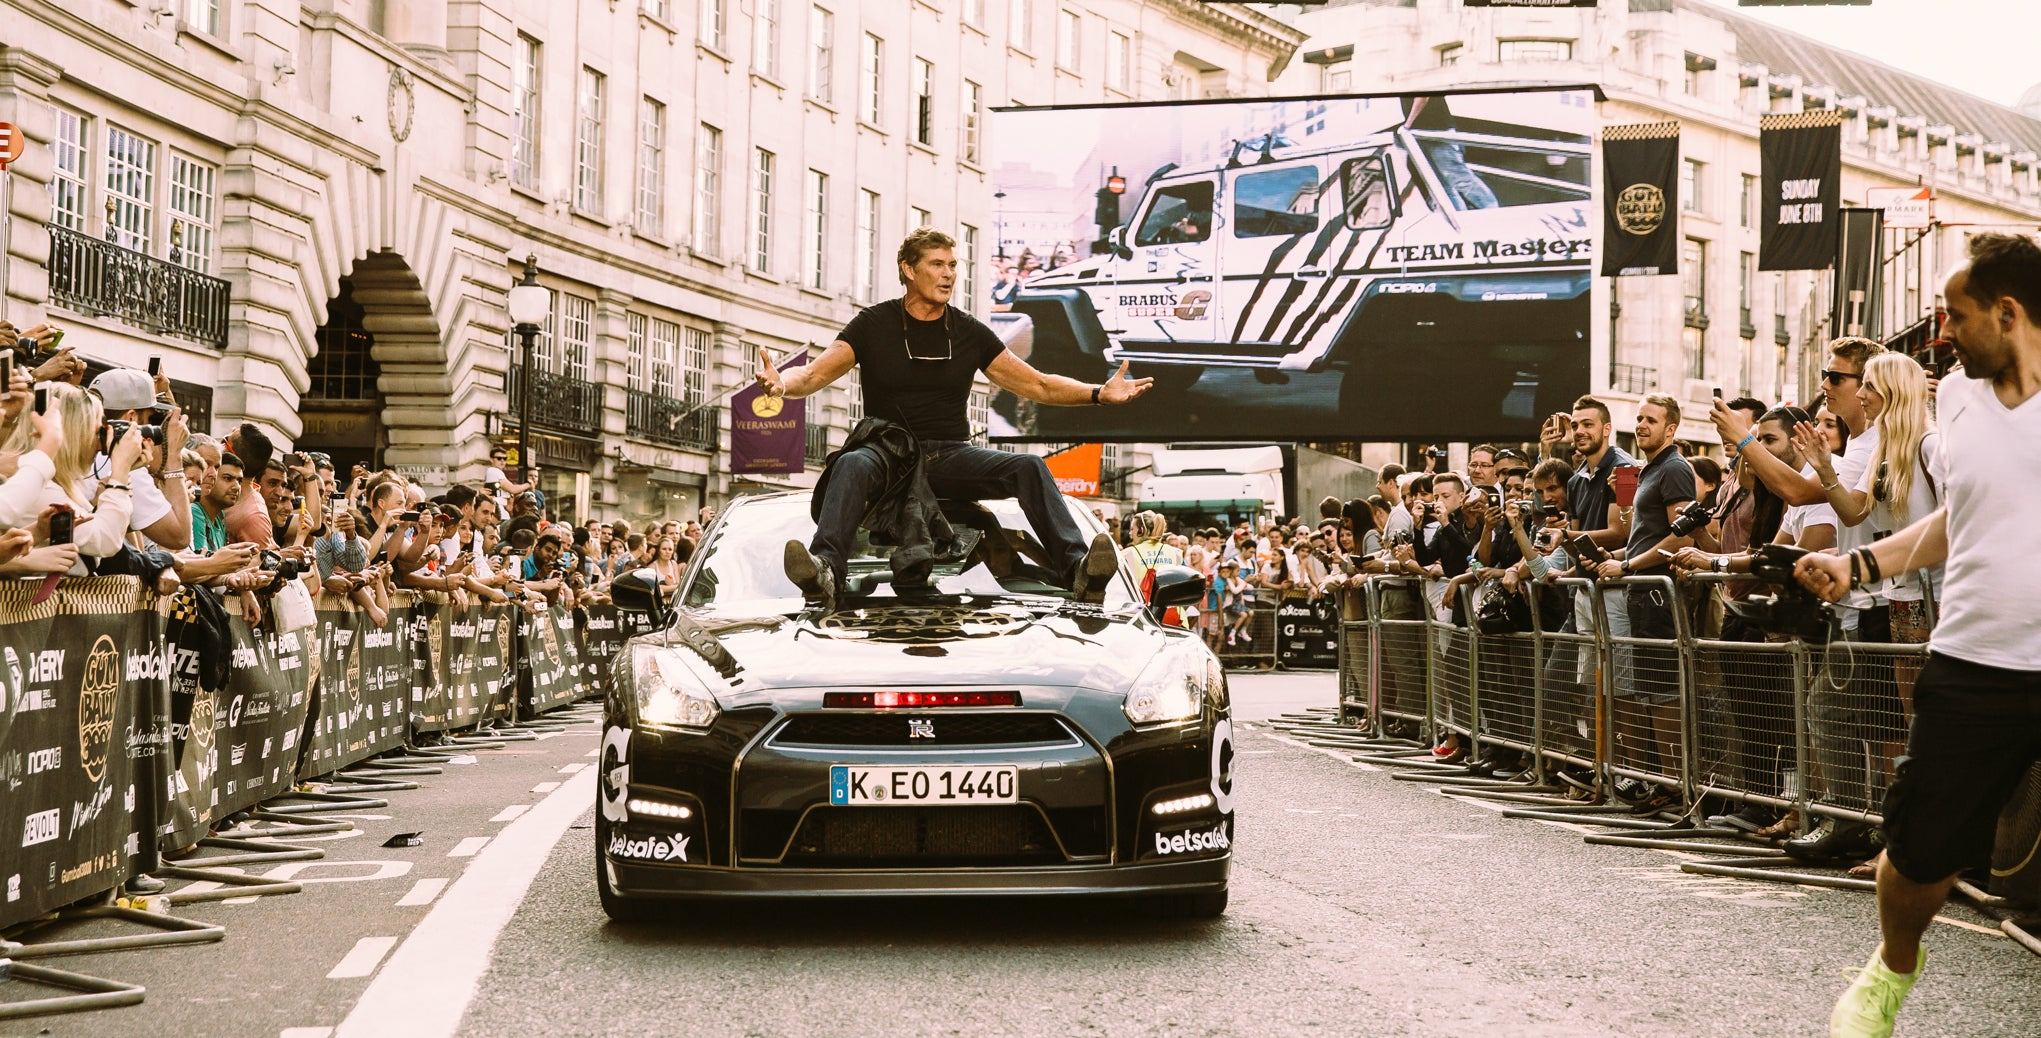 Here Is David Hasselhoff Riding A GT-R At The Gumball